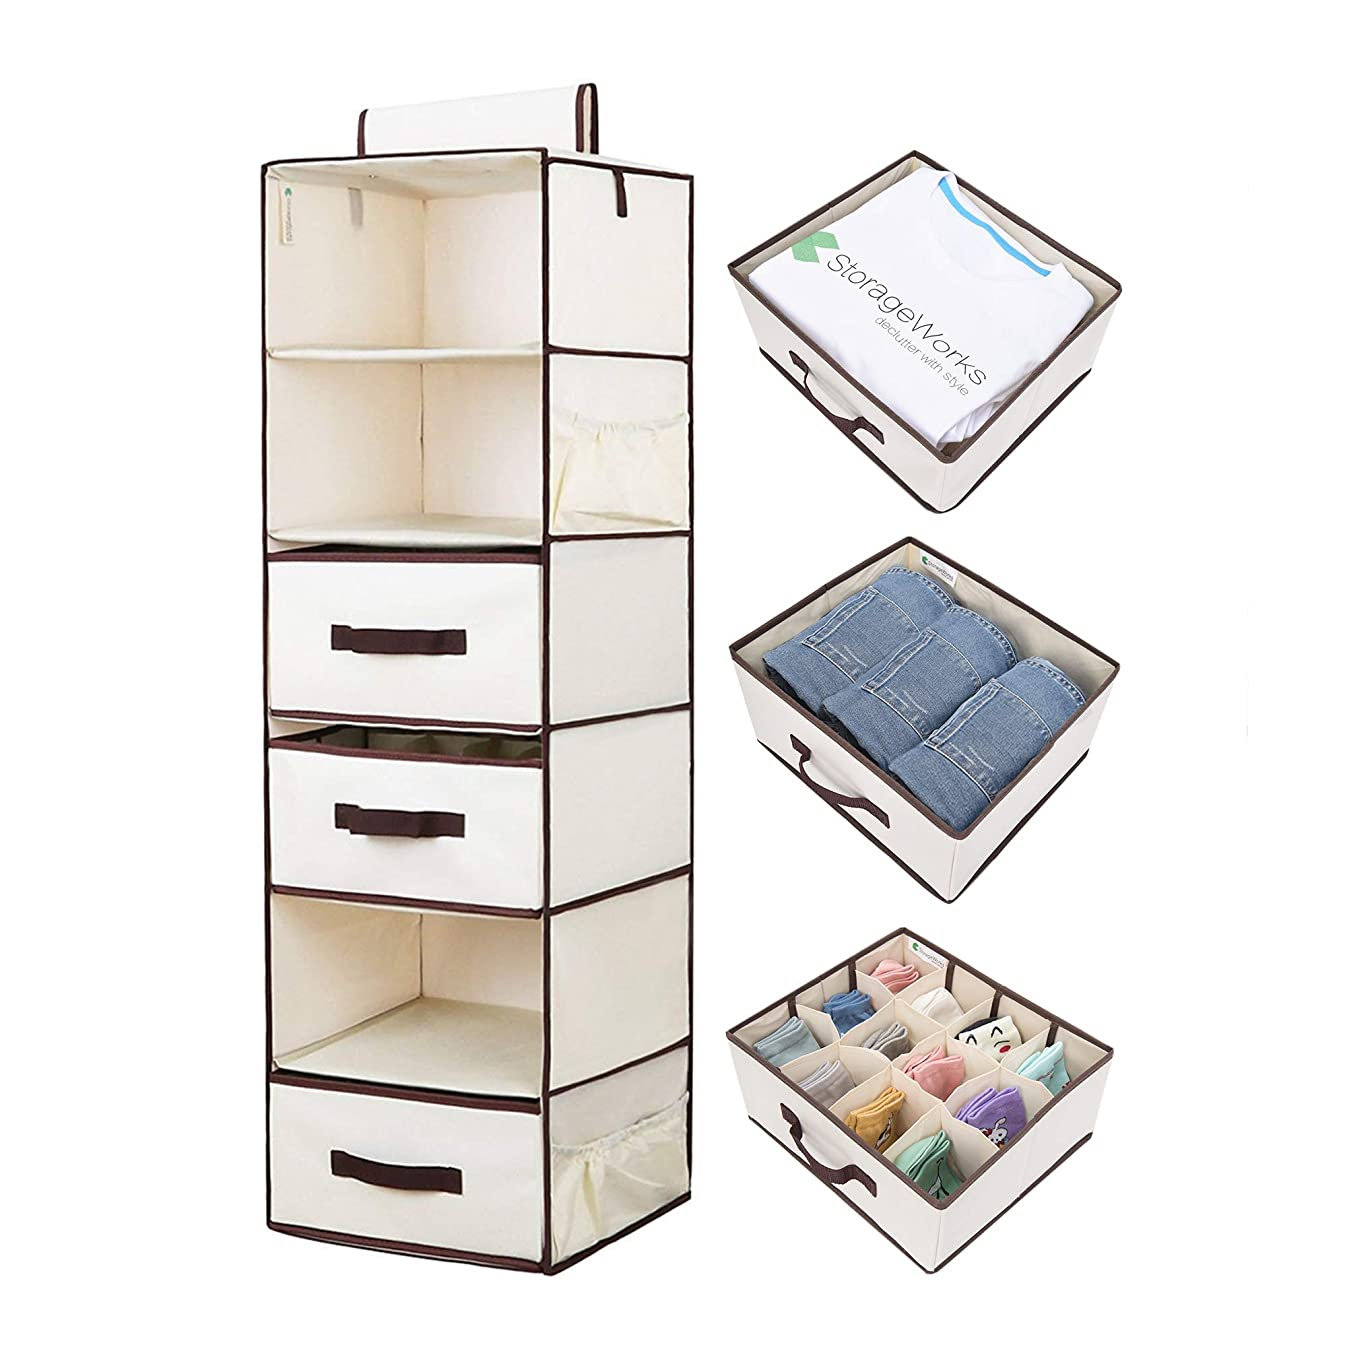 StorageWorks Hanging Closet Organizer, Foldable Closet Hanging Shelves with 2 Drawers & 1 Underwear Drawer, Polyester Canvas Closet Organizer,Natural, 6-Shelf, 13.6x12.2x42.5 inches